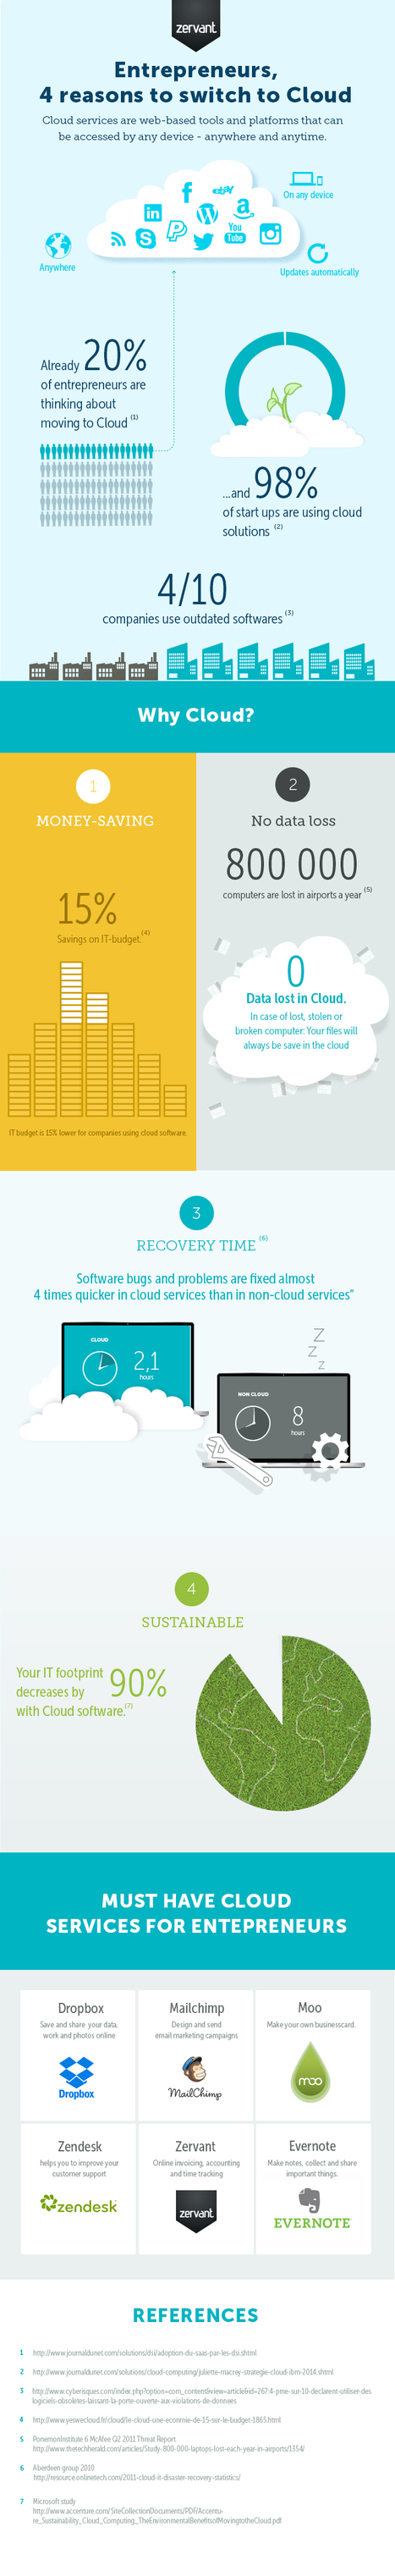 INFOGRAPHIC: Entrepreneurs, 4 reasons to switch to cloud | MarketingHits | Scoop.it